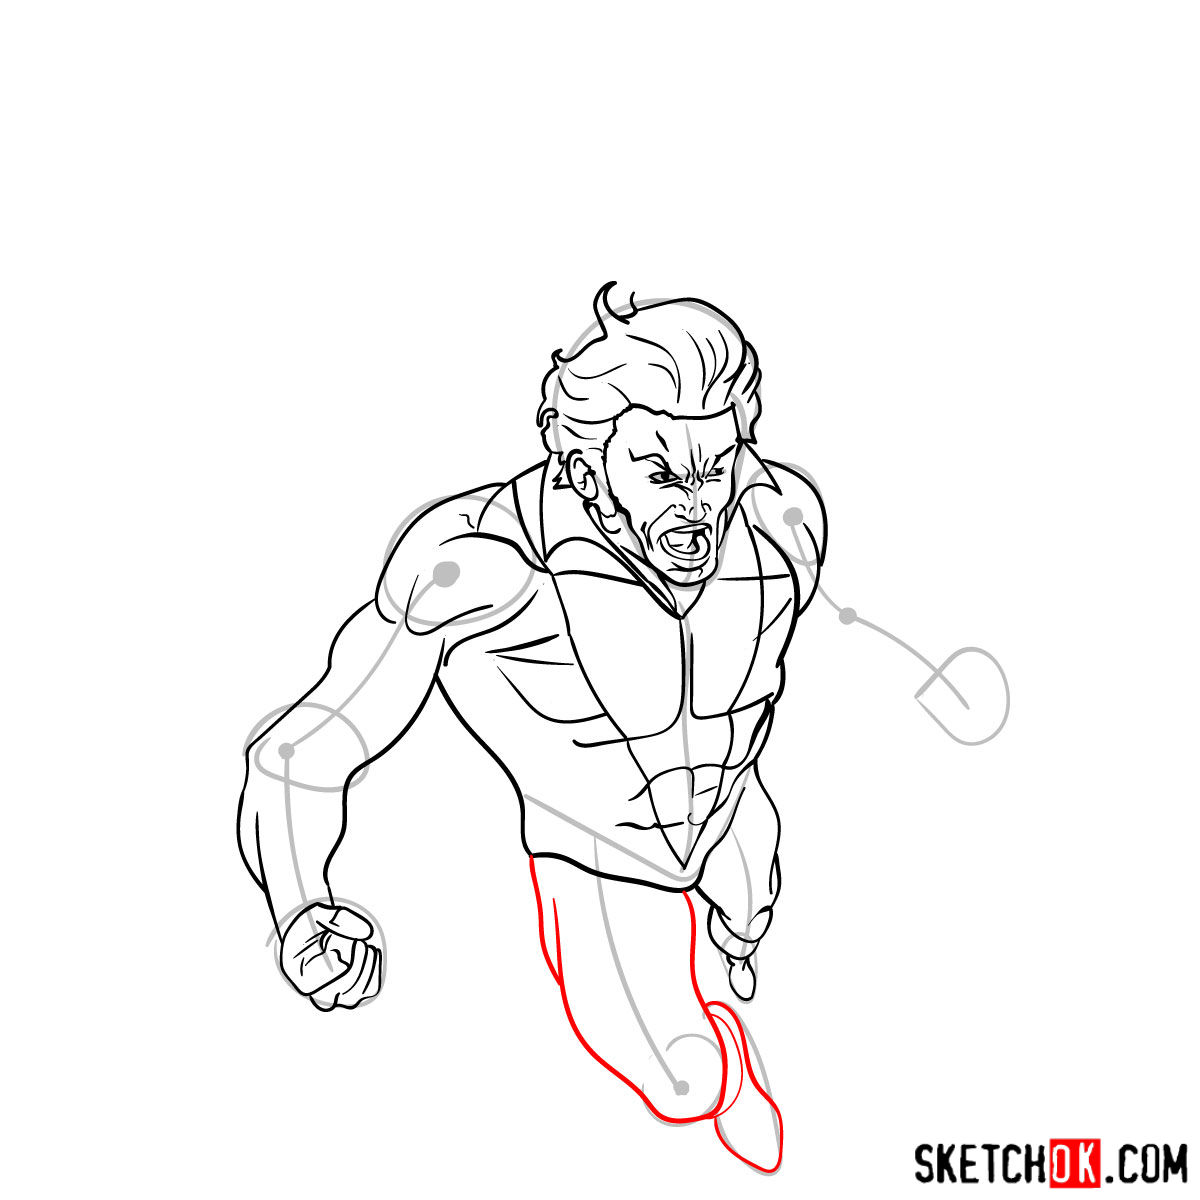 How to draw Banshee mutant from X-Men - step 11